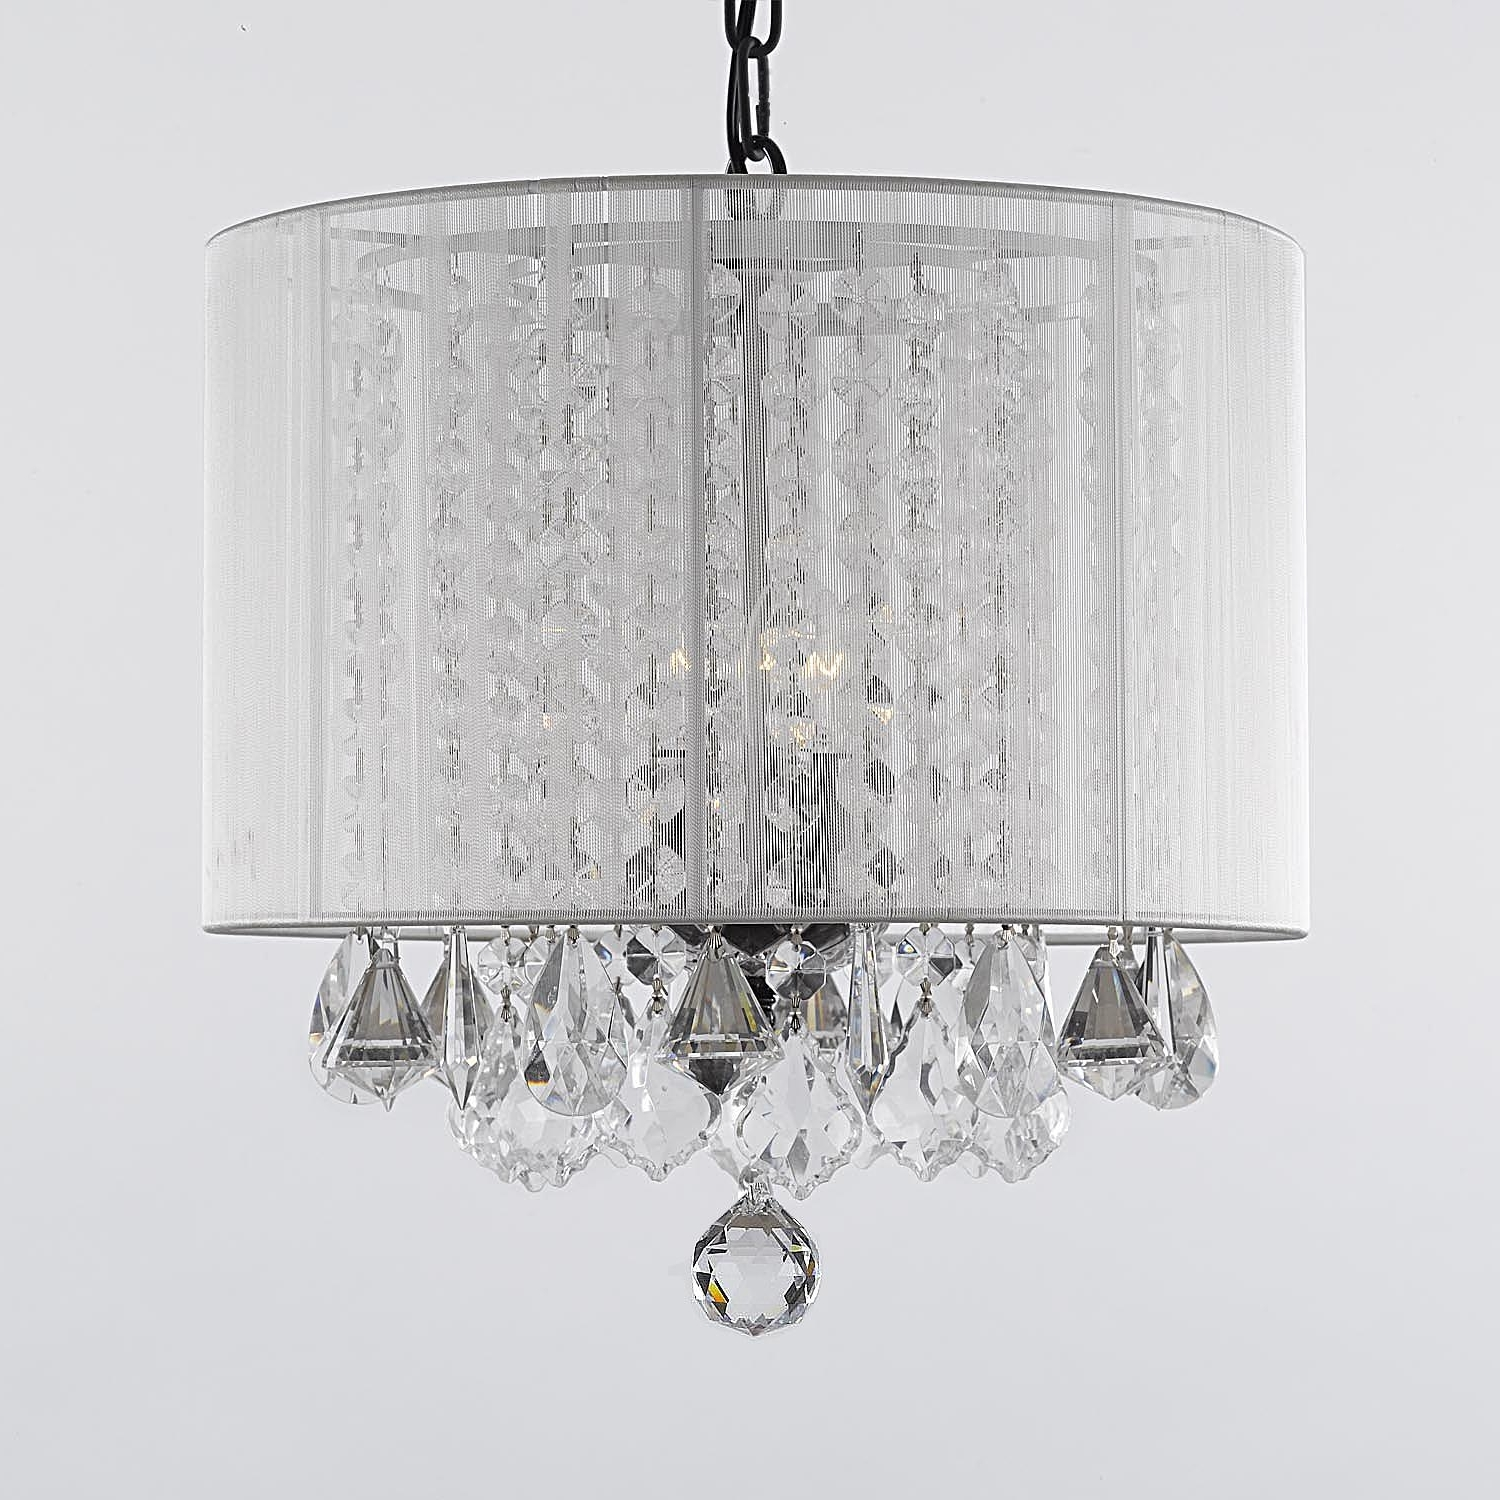 2019 Chandeliers : Chandelier With Drum Shade Beautiful Black Drum Shade With Regard To Chandelier With Shades And Crystals (View 17 of 20)